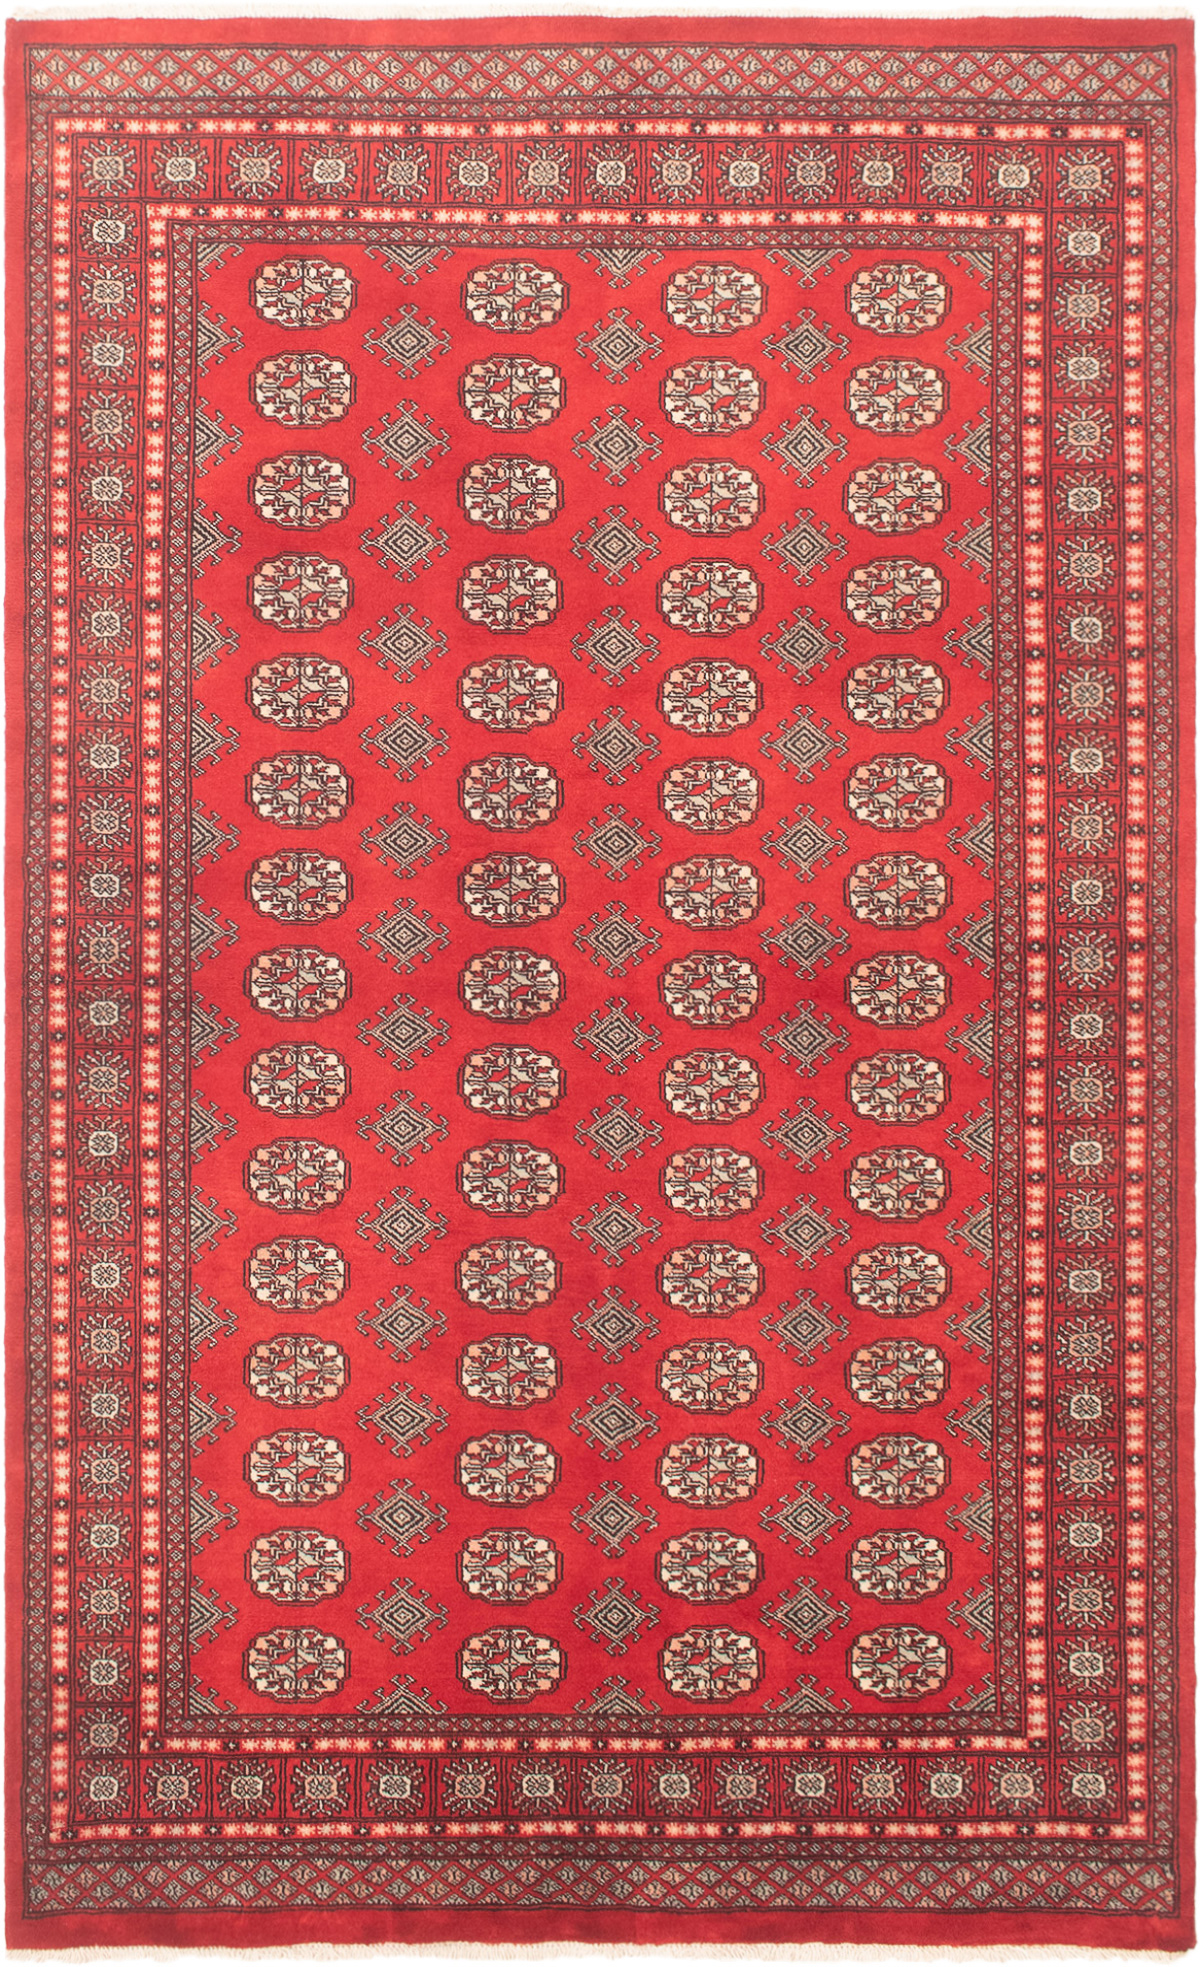 "Hand-knotted Finest Peshawar Bokhara Red Wool Rug 5'0"" x 8'2""  Size: 5'0"" x 8'2"""